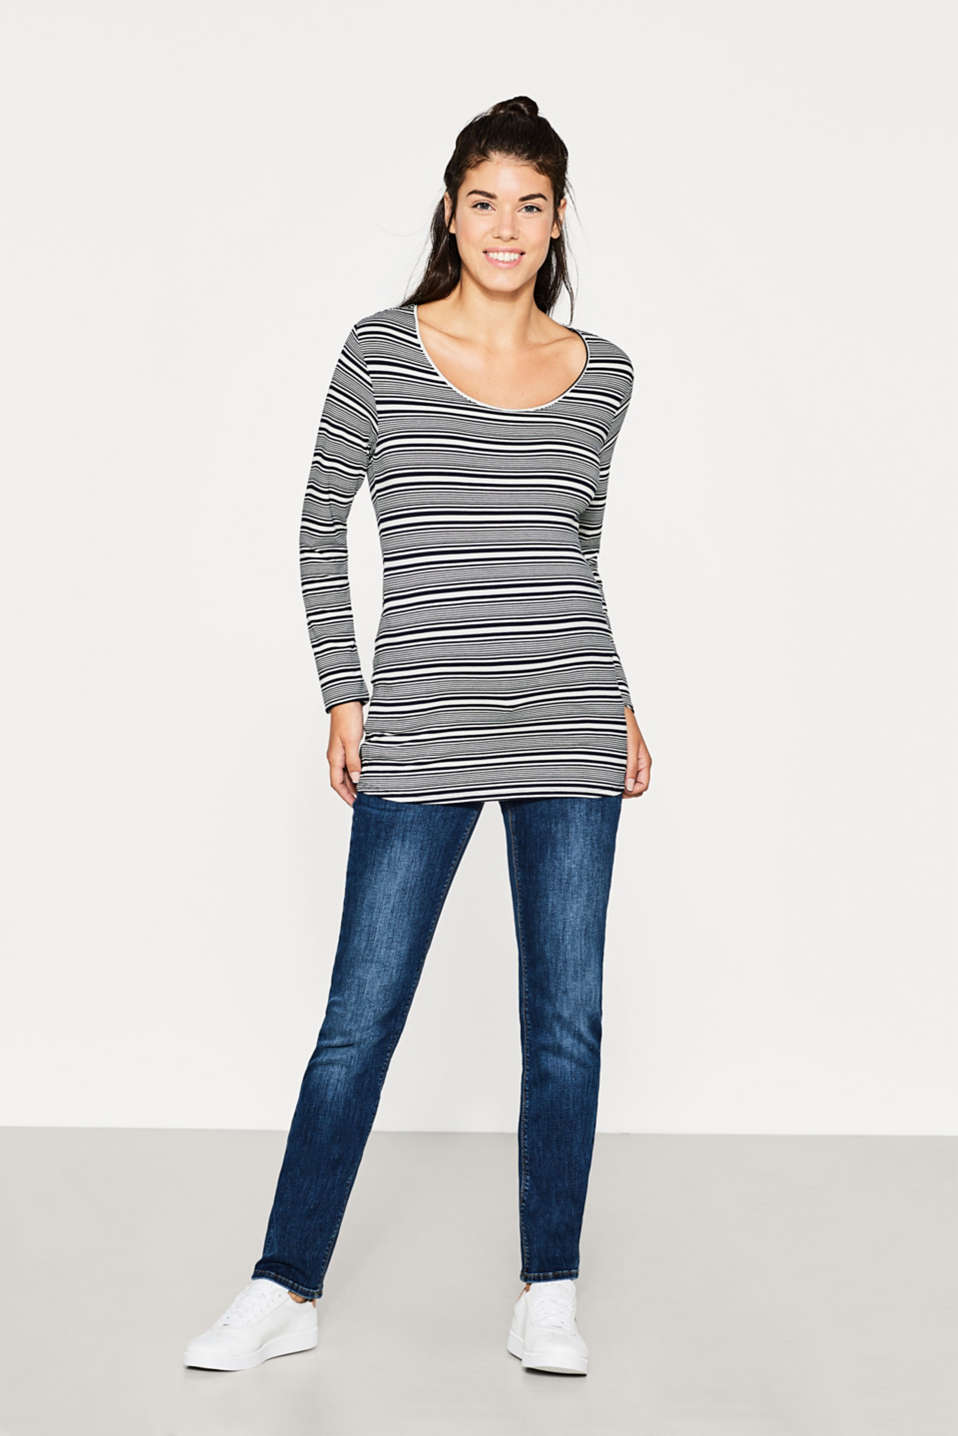 Flowing stretch long sleeve top with stripes